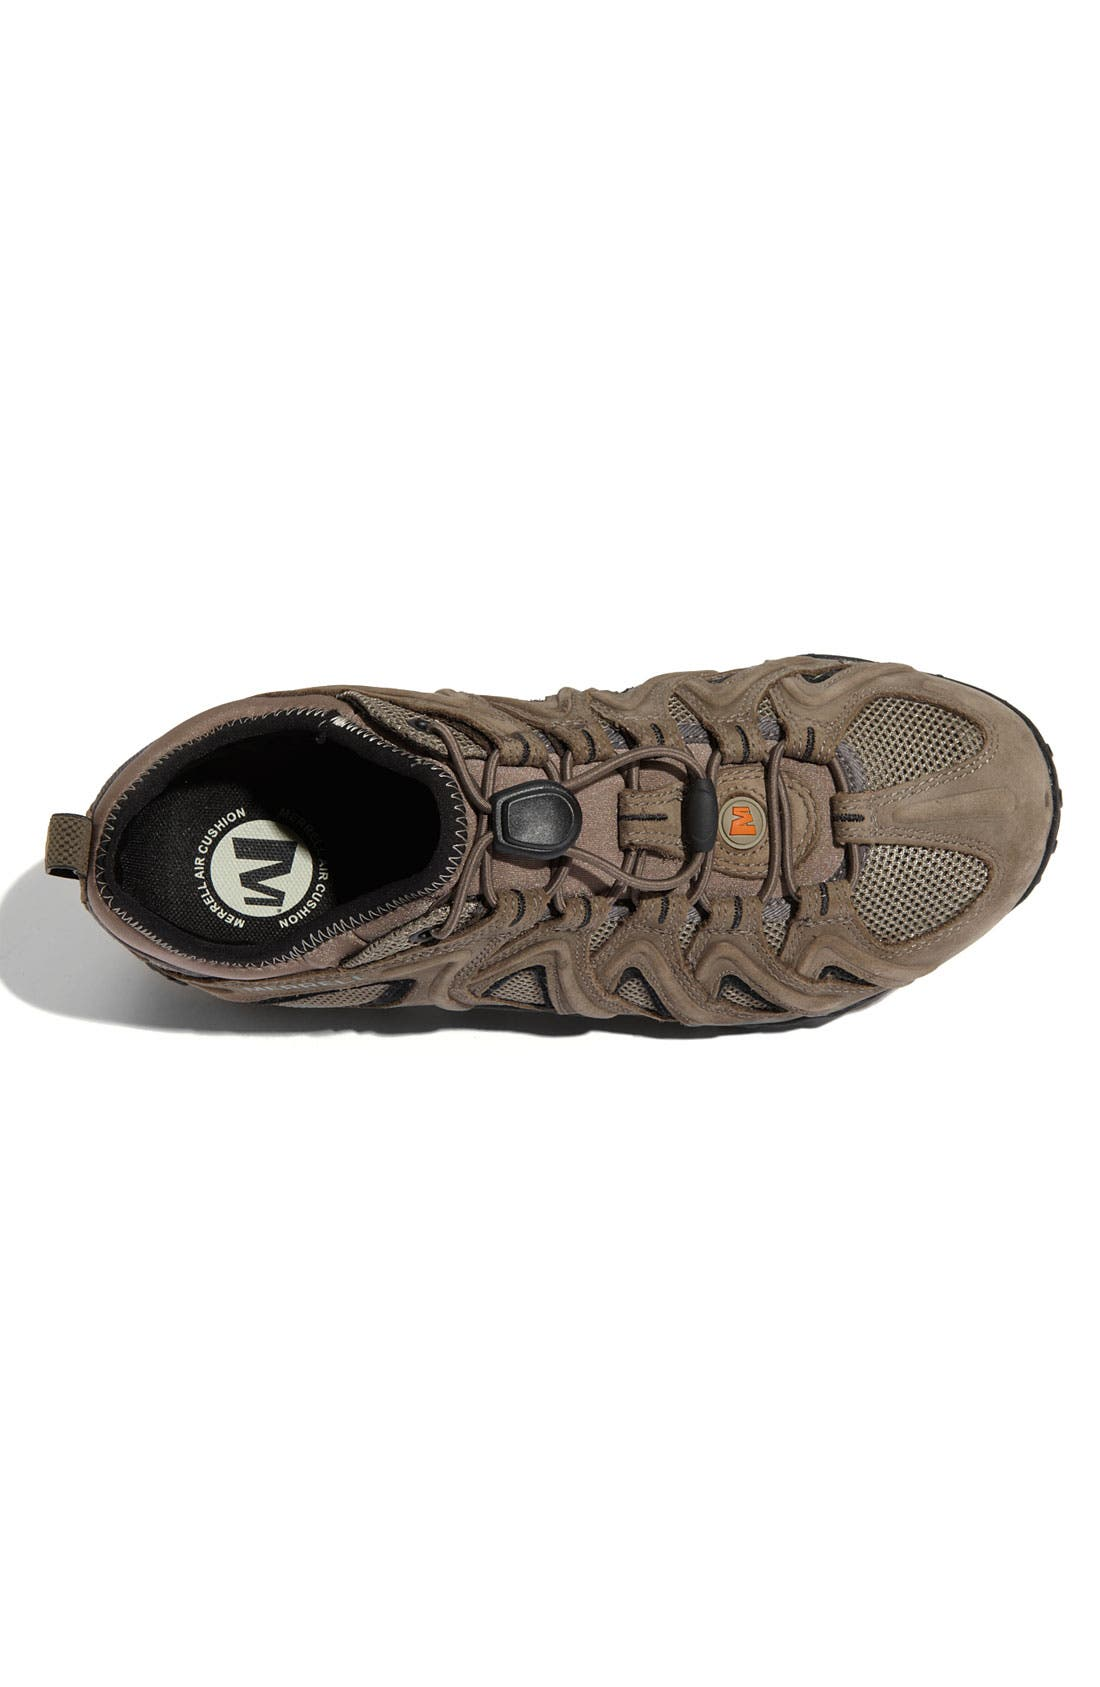 Alternate Image 2  - Merrell 'Chameleon 4' Hiking Shoe (Men)